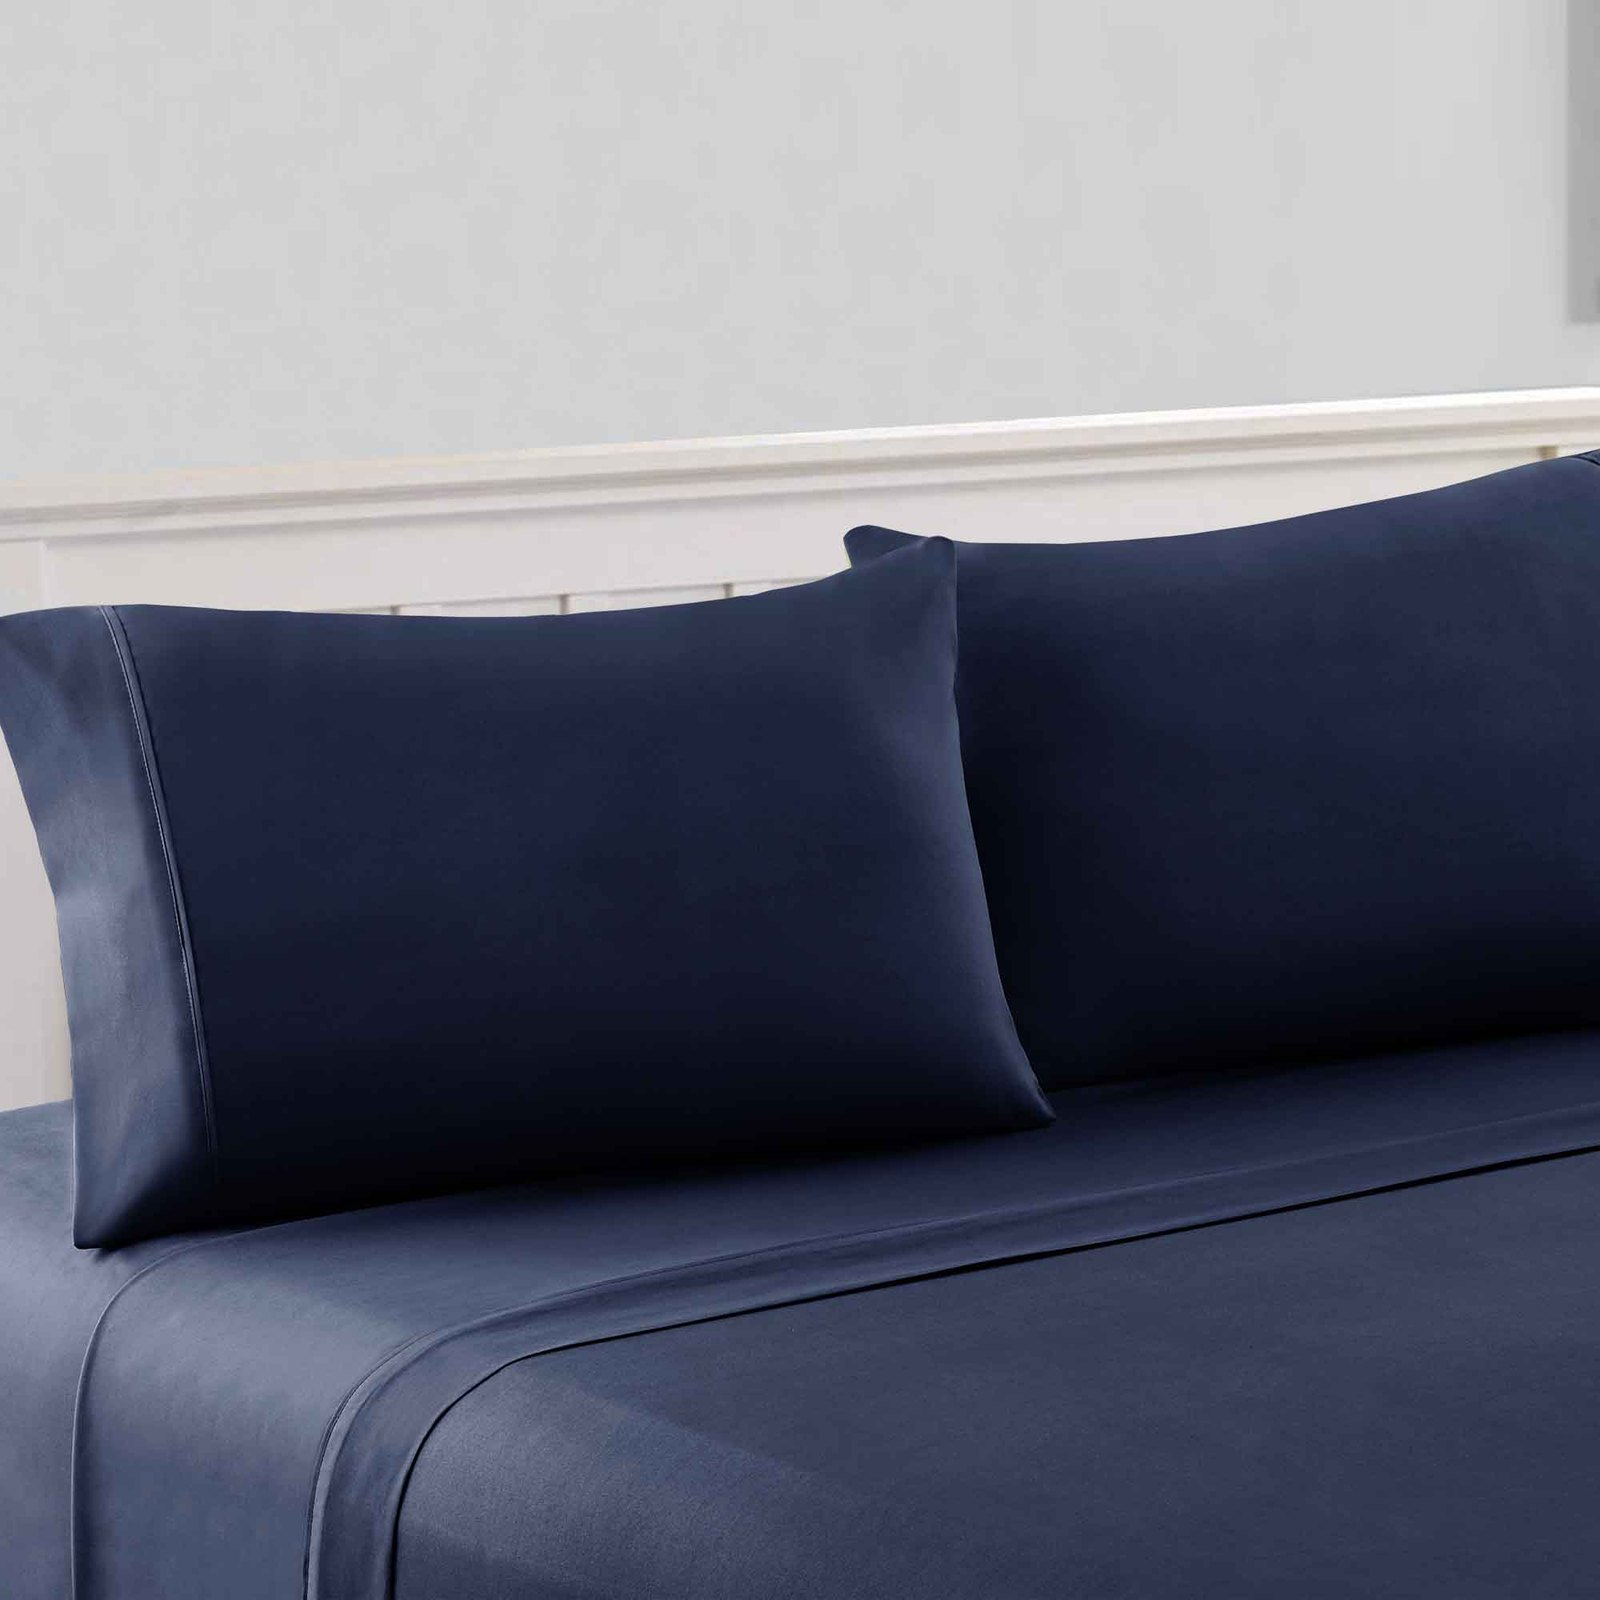 Primary image for Bezons 4 Piece California King Microfiber Sheet Set with 1800 Thread Count, Navy